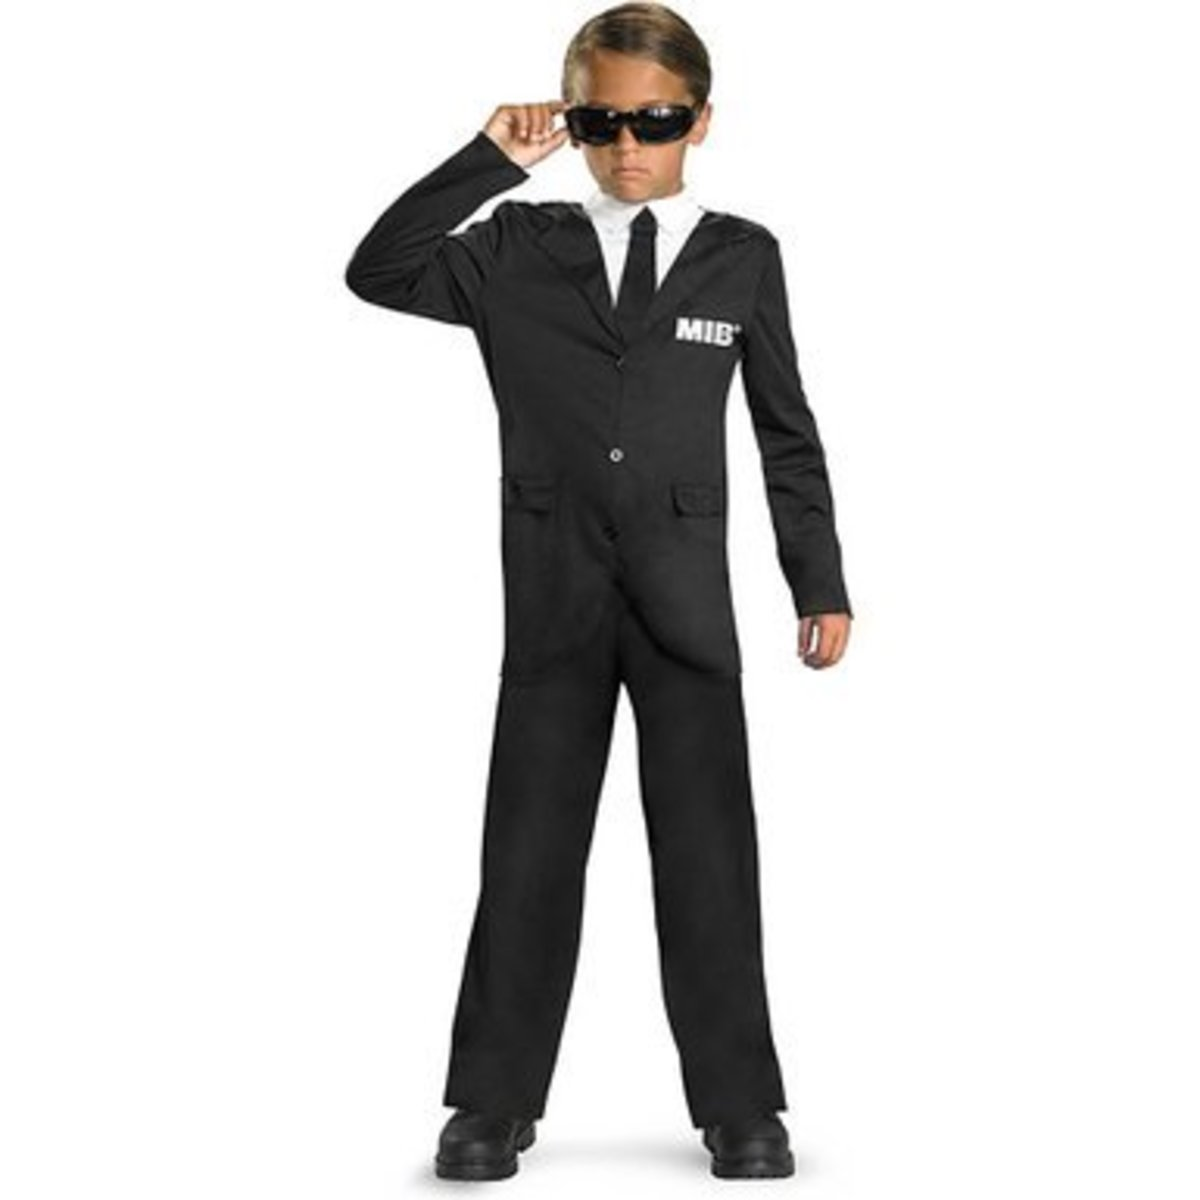 Men in Black costume